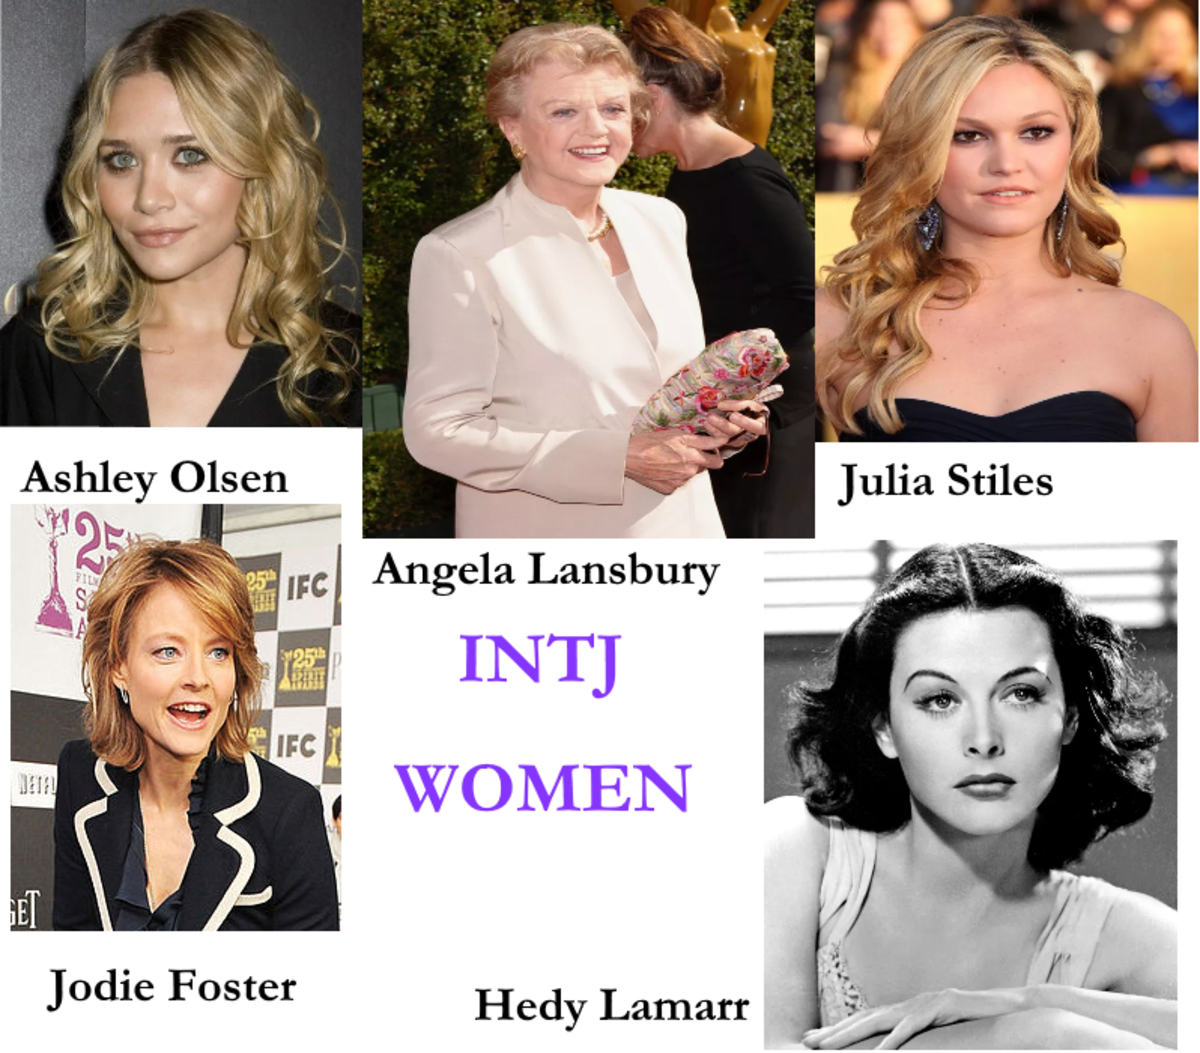 The INTJ Female Personality: Introvert, Powerful, and Independent.